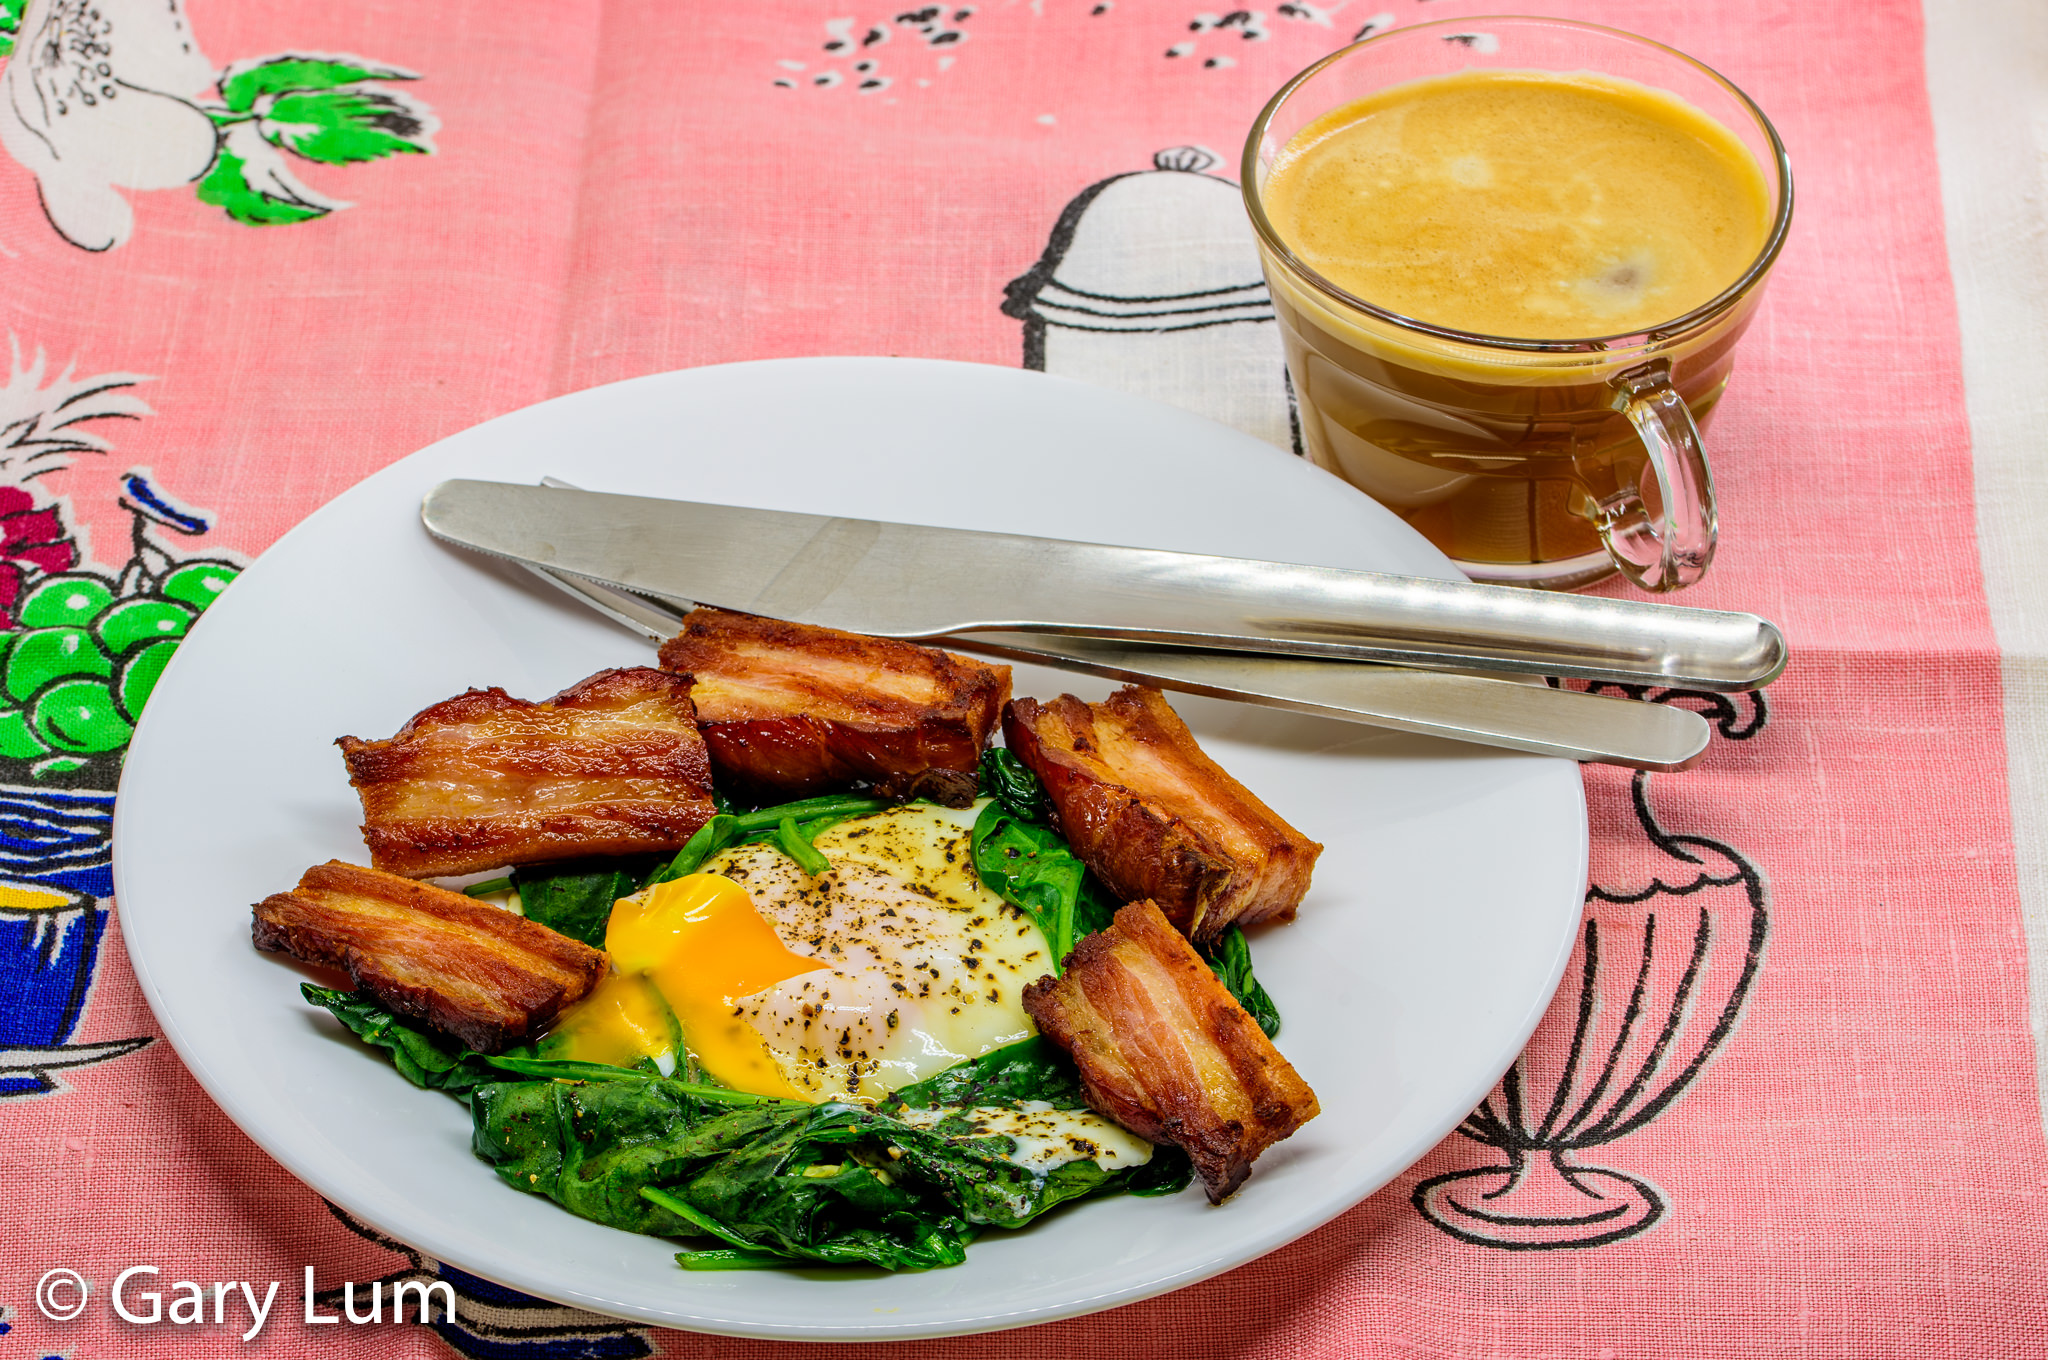 Oven cooked speck with steamed egg and wilted spinach served with Nespresso™ coffee. Gary Lum.